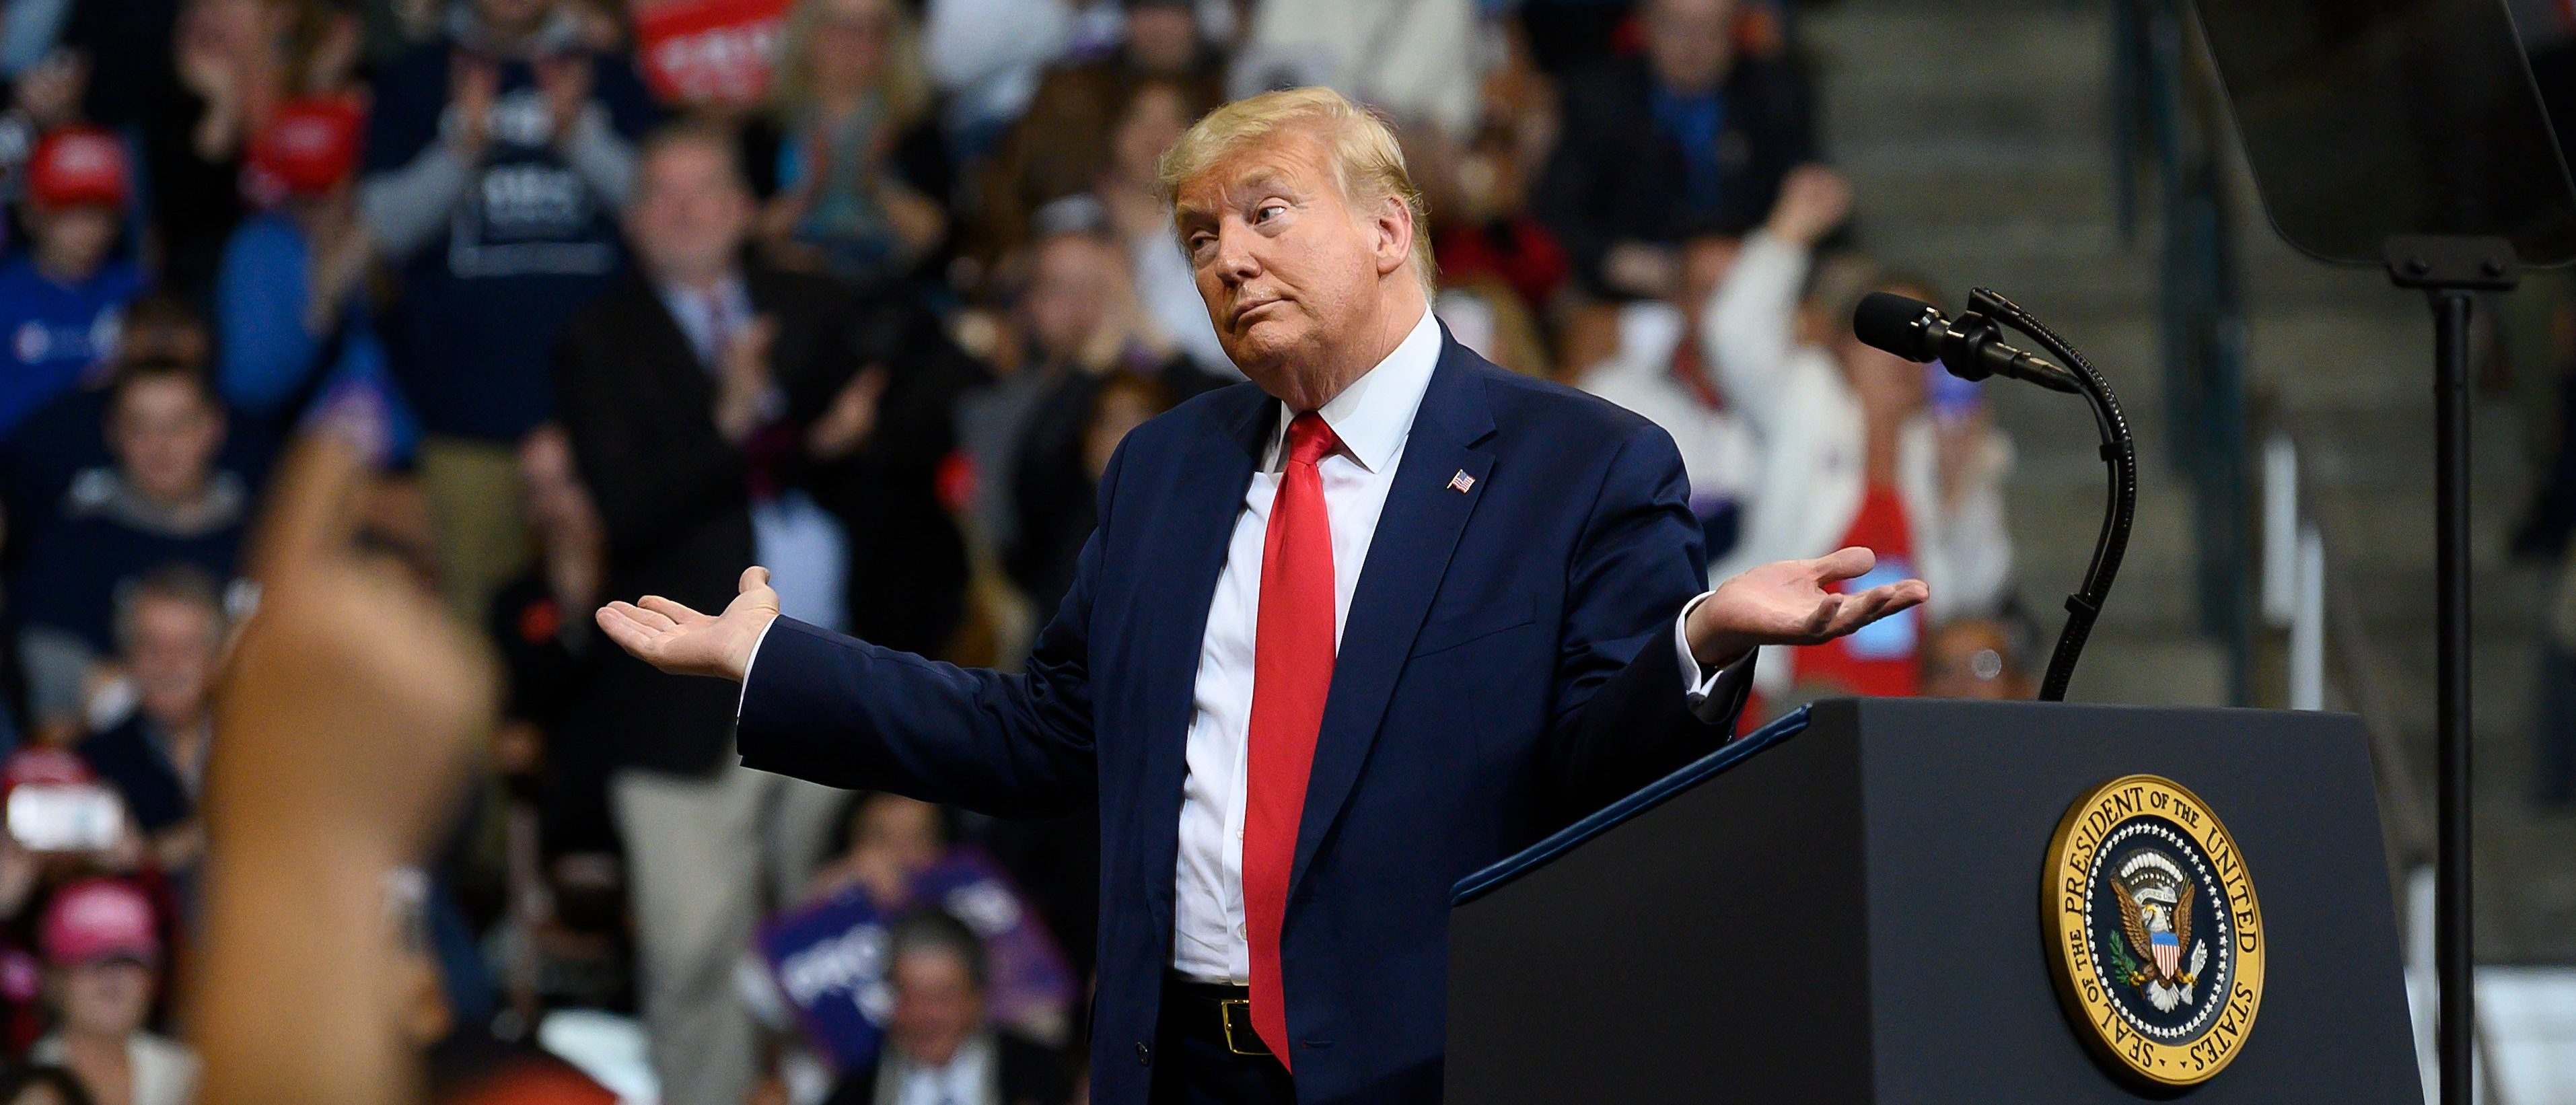 """US President Donald Trump looks at his supporters after reading words from Al Wilson's song """"The Snake"""" during a rally in Manchester, New Hampshire on February 10, 2020. (Photo by JIM WATSON / AFP) (Photo by JIM WATSON/AFP via Getty Images)"""